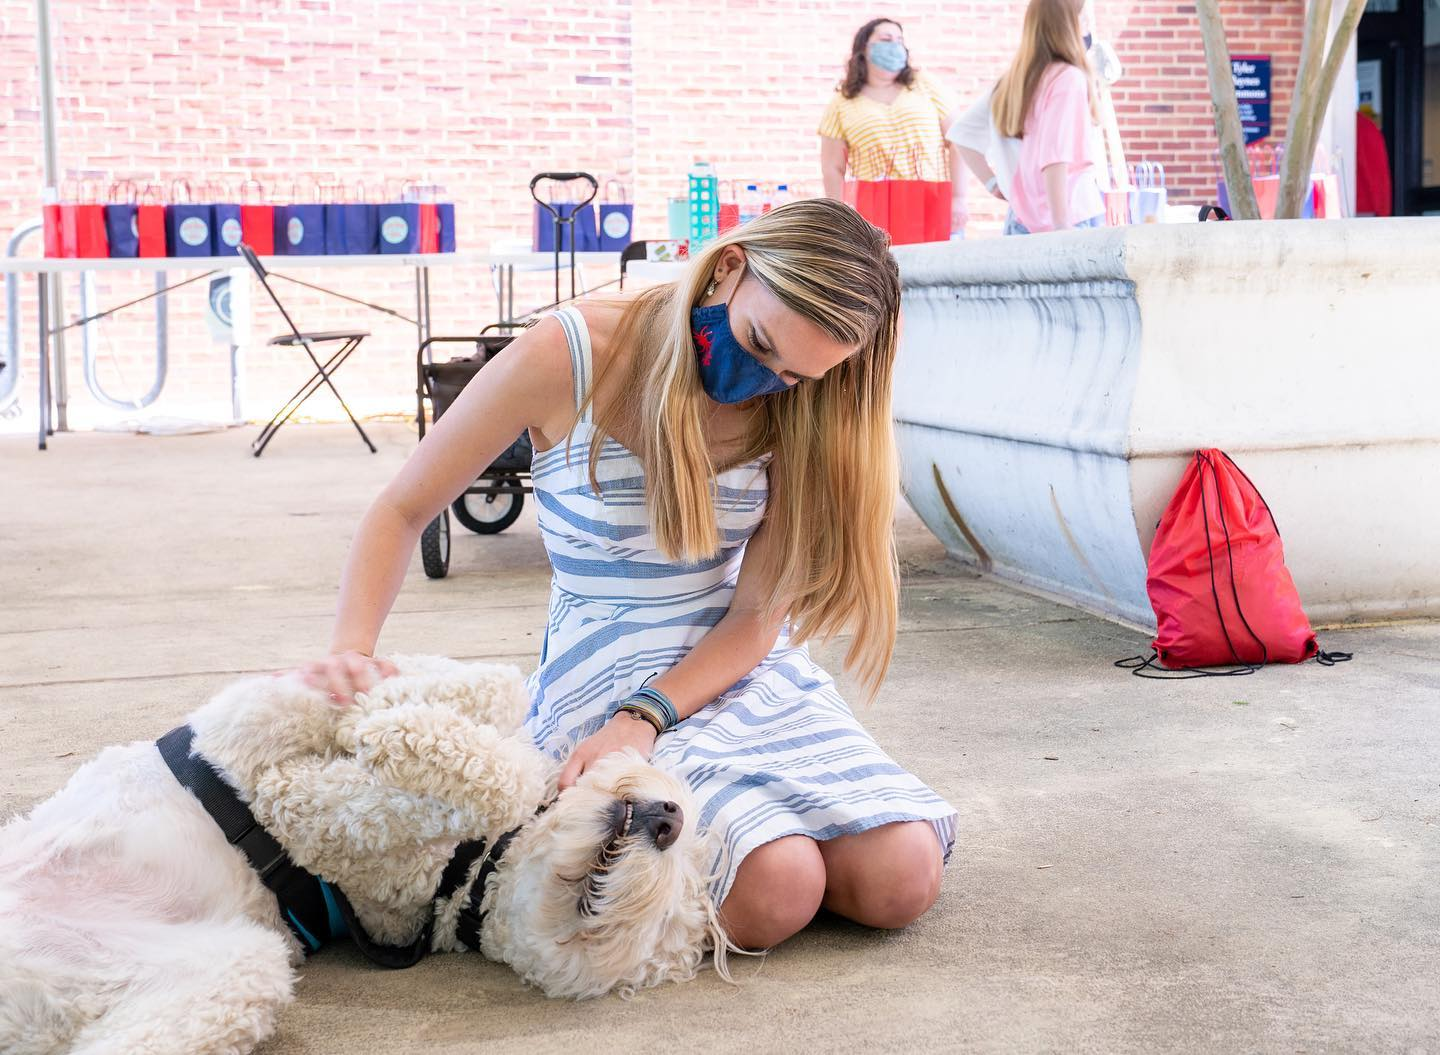 Study breaks are good for all souls — human and canine. Just ask @emmettofurwellbeing. Good luck on exams, #Spiders! 🕷️❤️💙